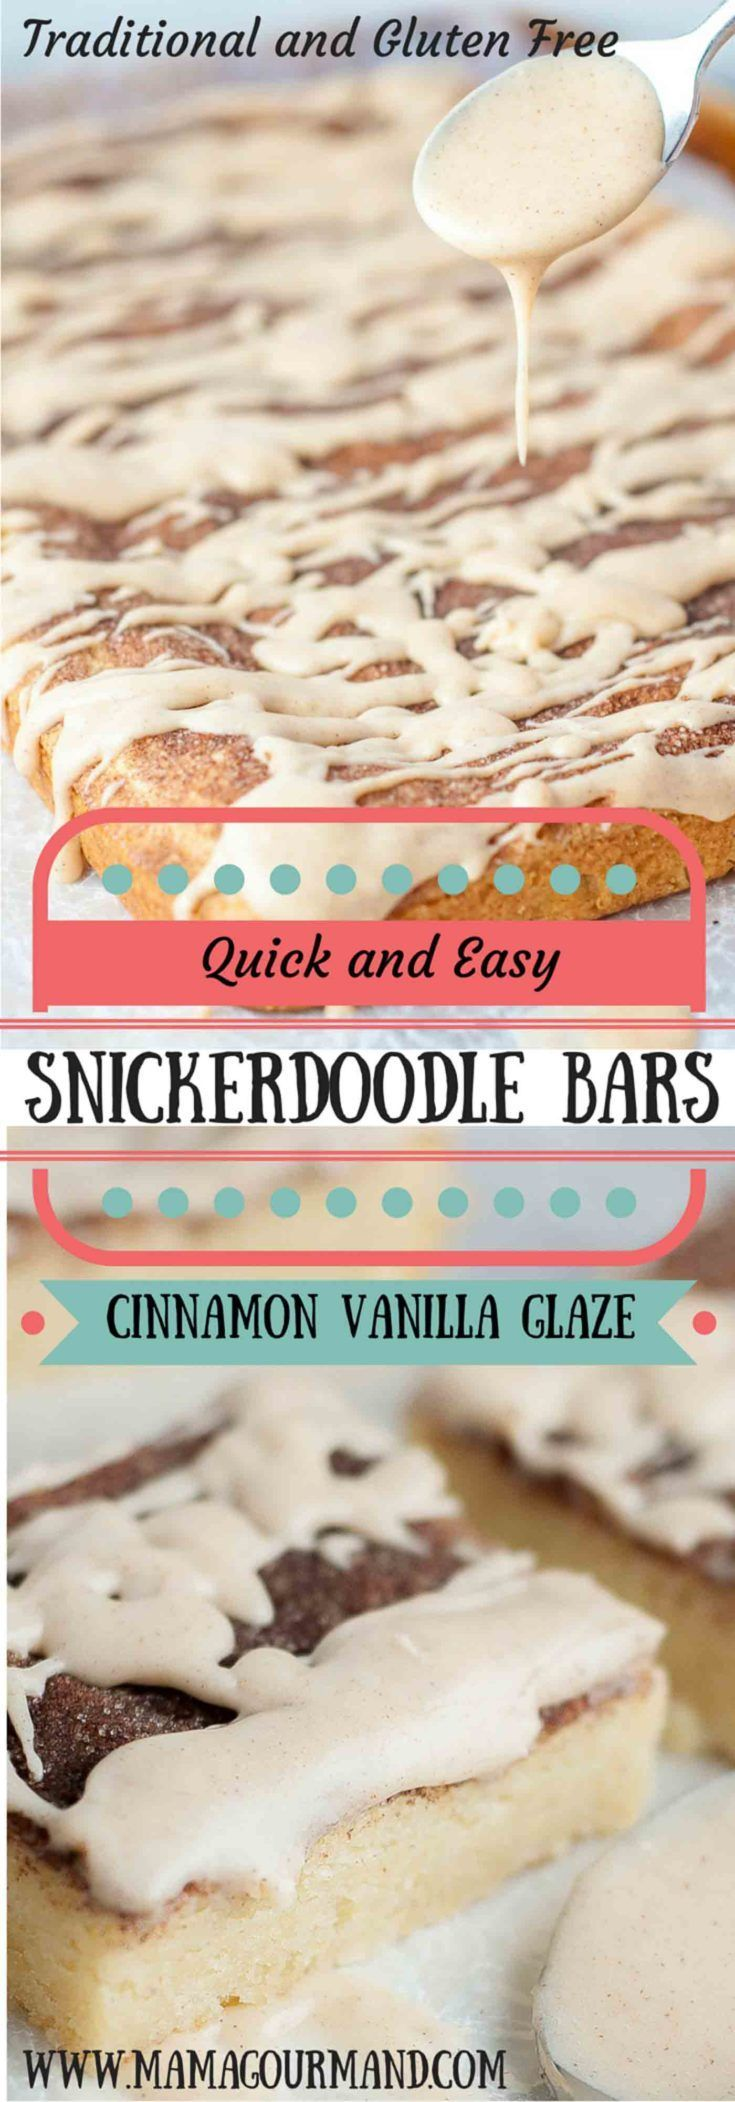 These Snickerdoodle Bars with Cinnamon Vanilla Glaze taste just like your favorite snickerdoodle cookie taken to the next level with a delicious gooey glaze drizzled all over. http://www.mamagourmand.com